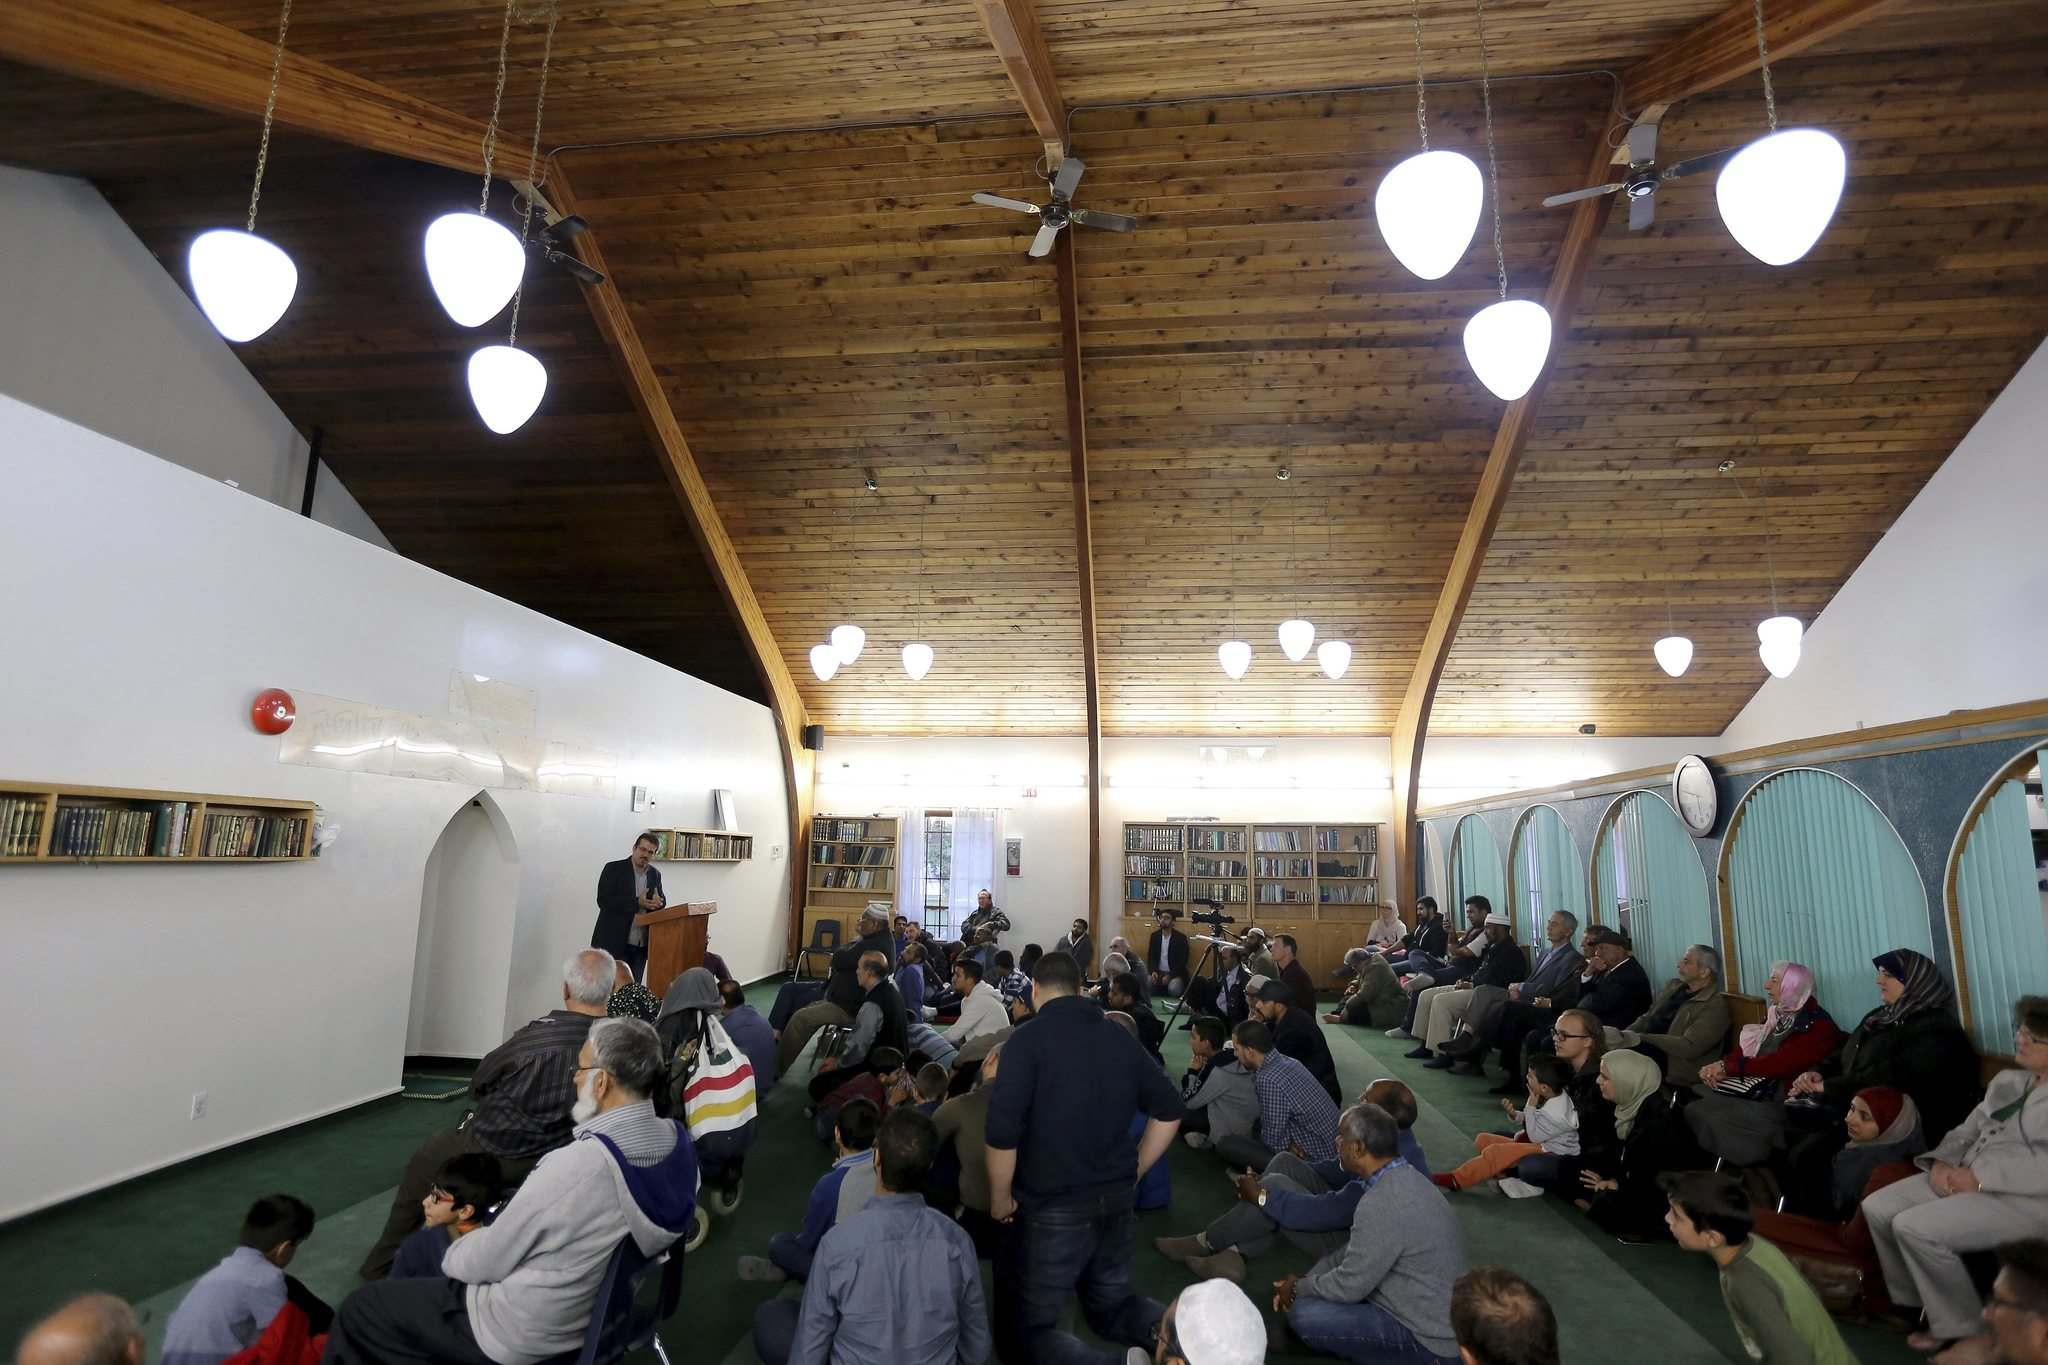 TREVOR HAGAN / WINNIPEG FREE PRESS</p><p>A special event at the newly renamed Pioneer Mosque on its 40th anniversary, Sunday.</p>